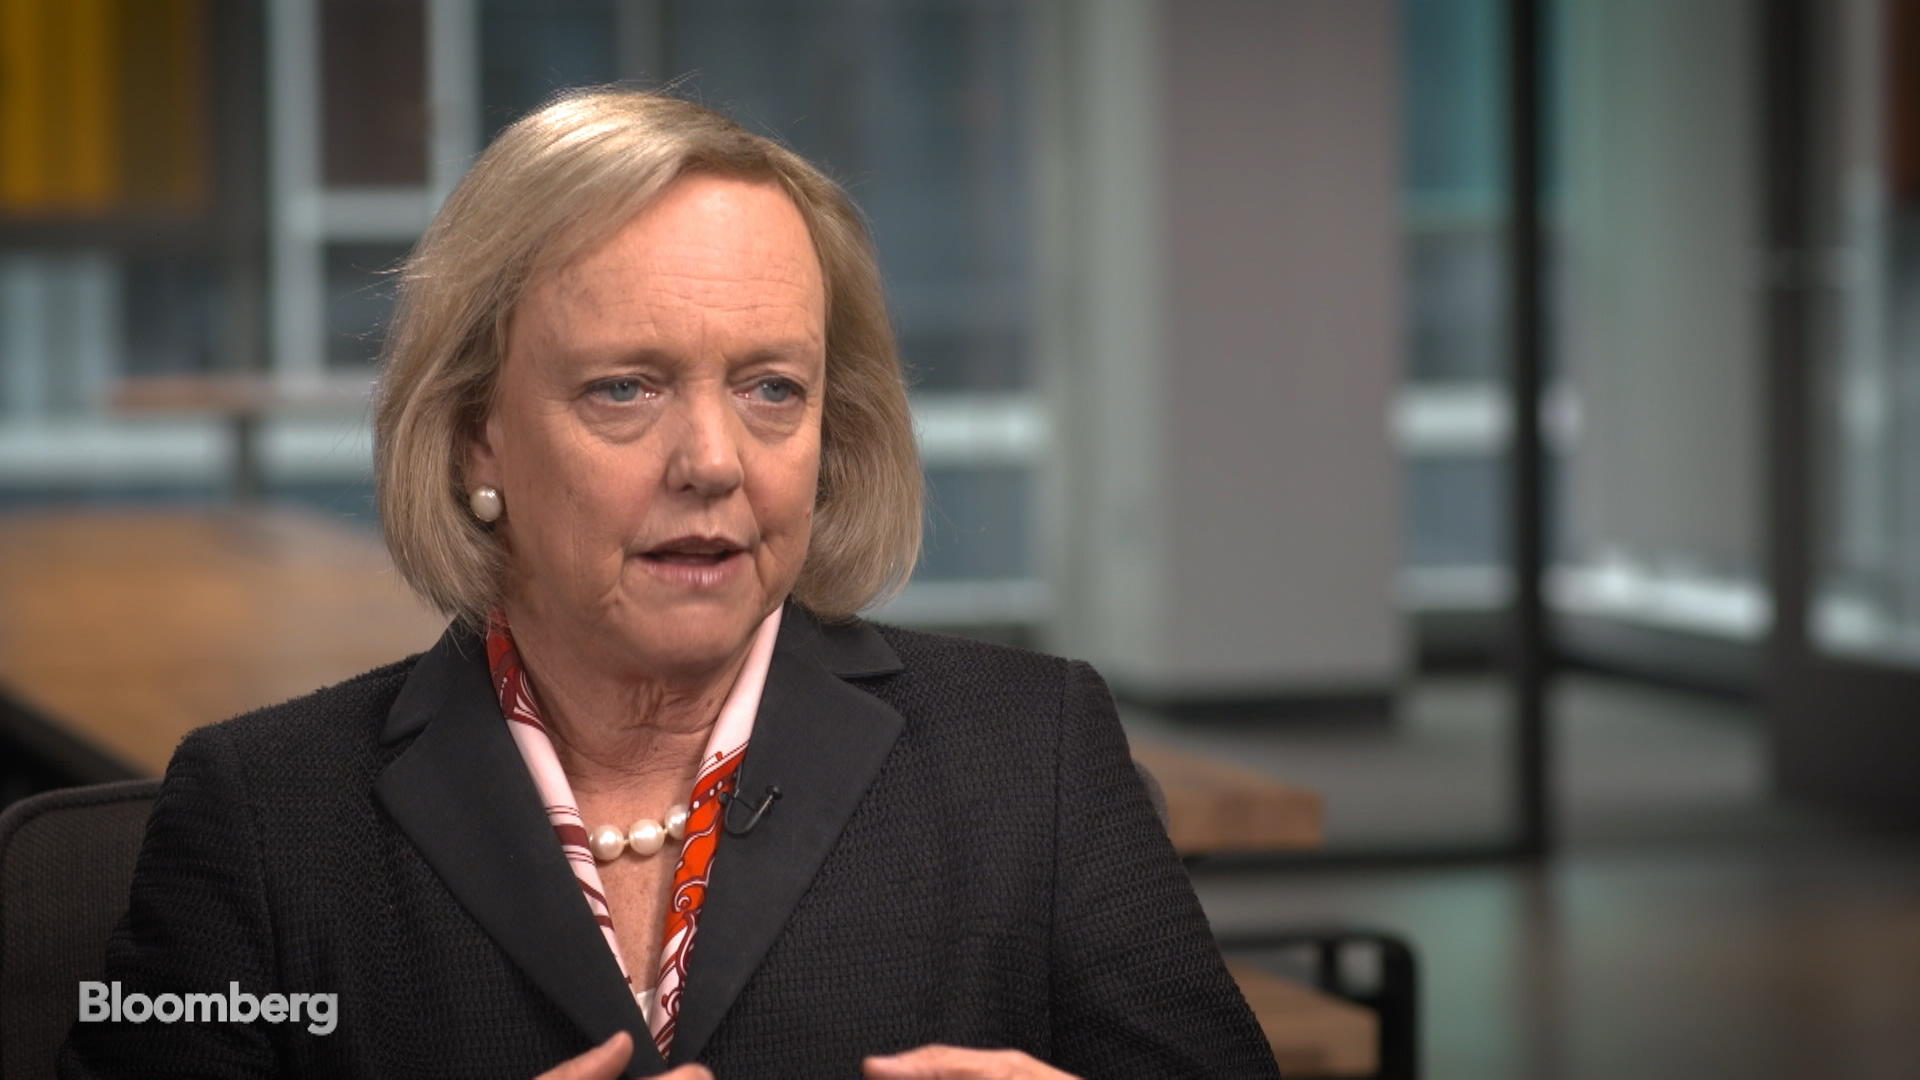 Whitman Says 'It's Unwise' For Businesses to Head Into China Alone